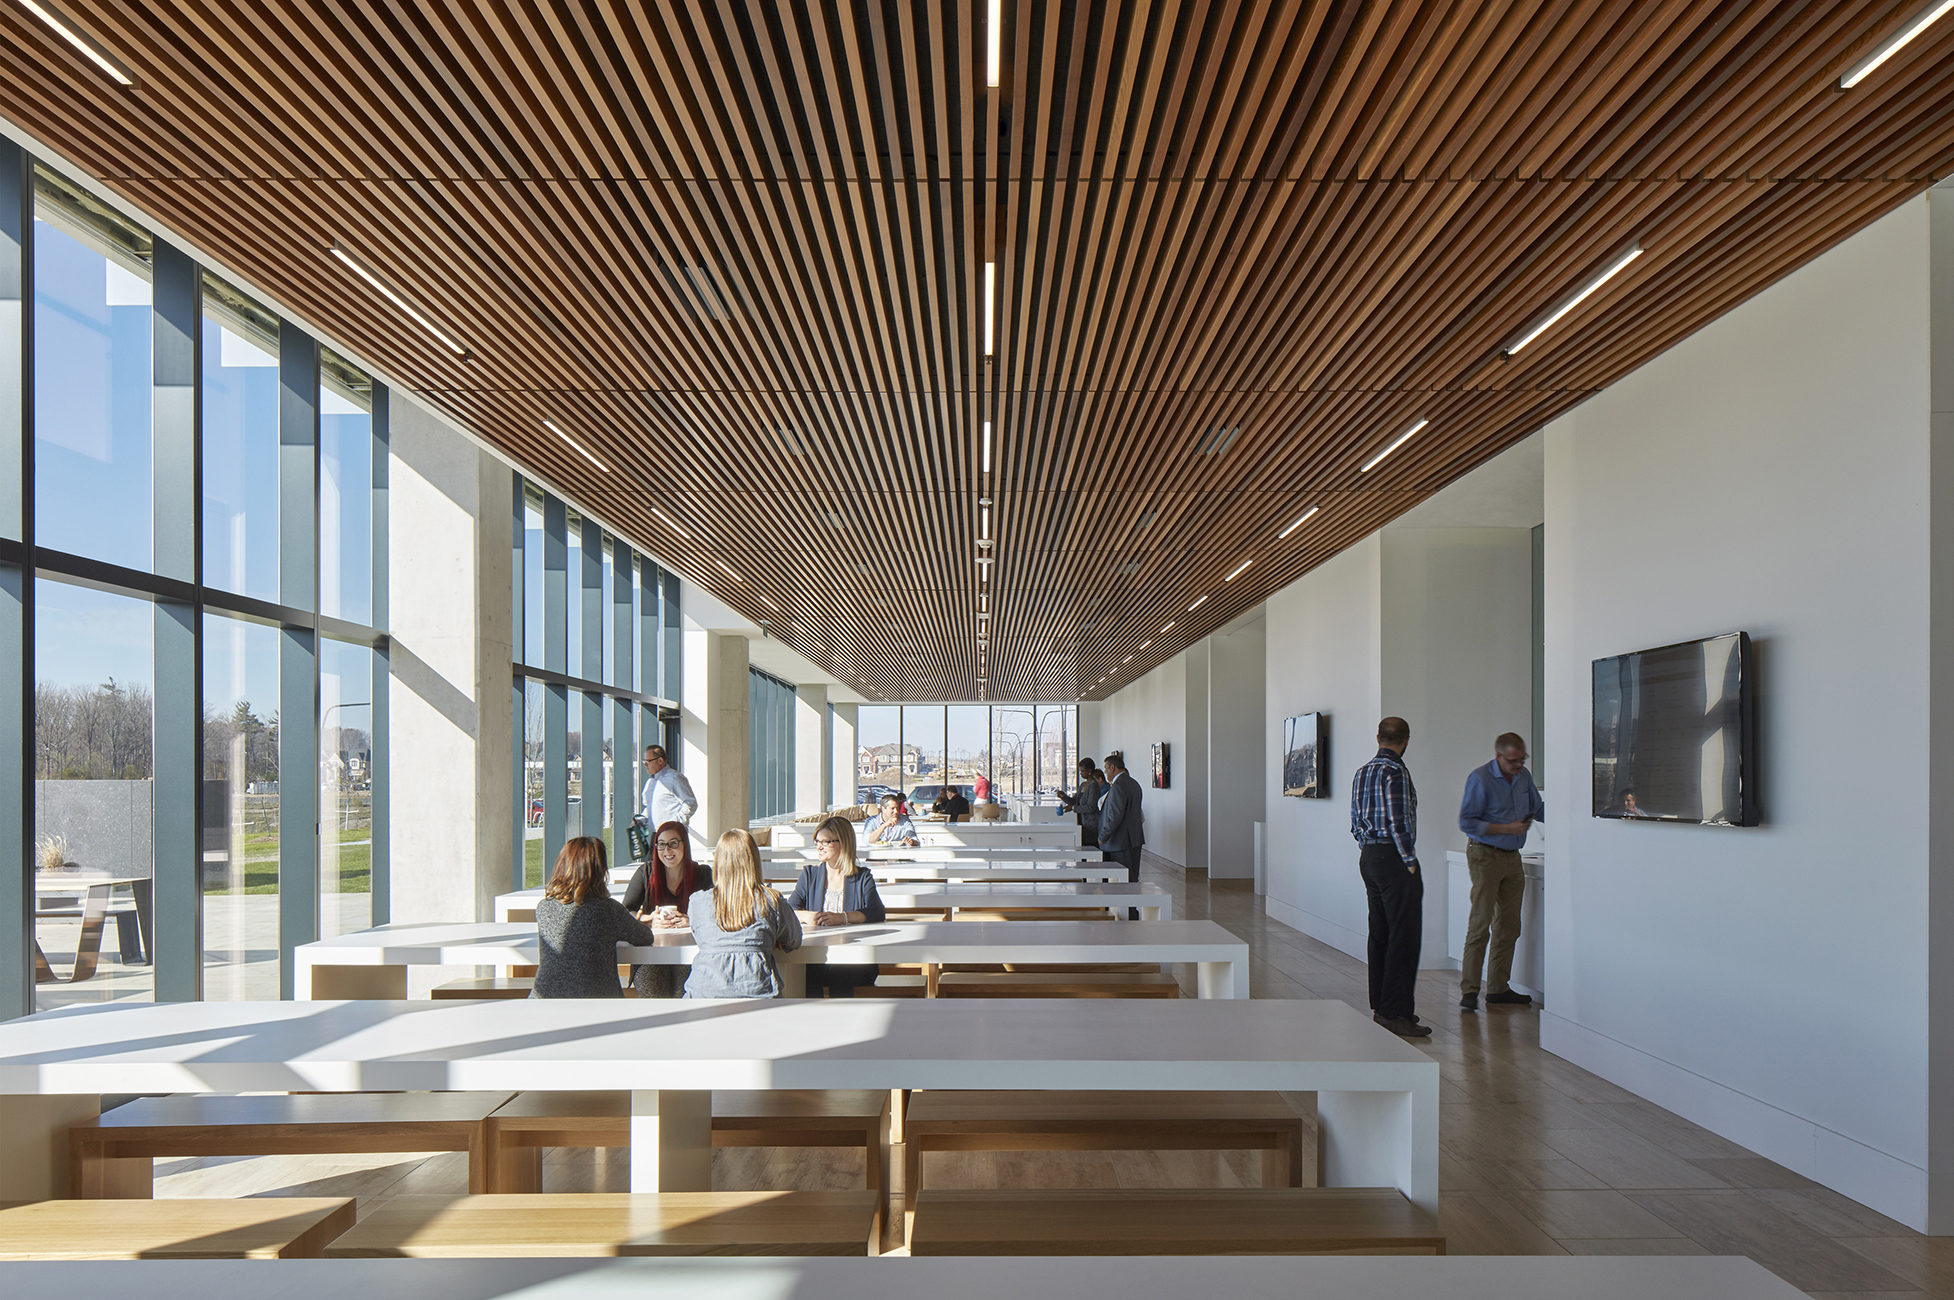 http://mtarch.com/projects/canon-canada-inc-headquarters-2/